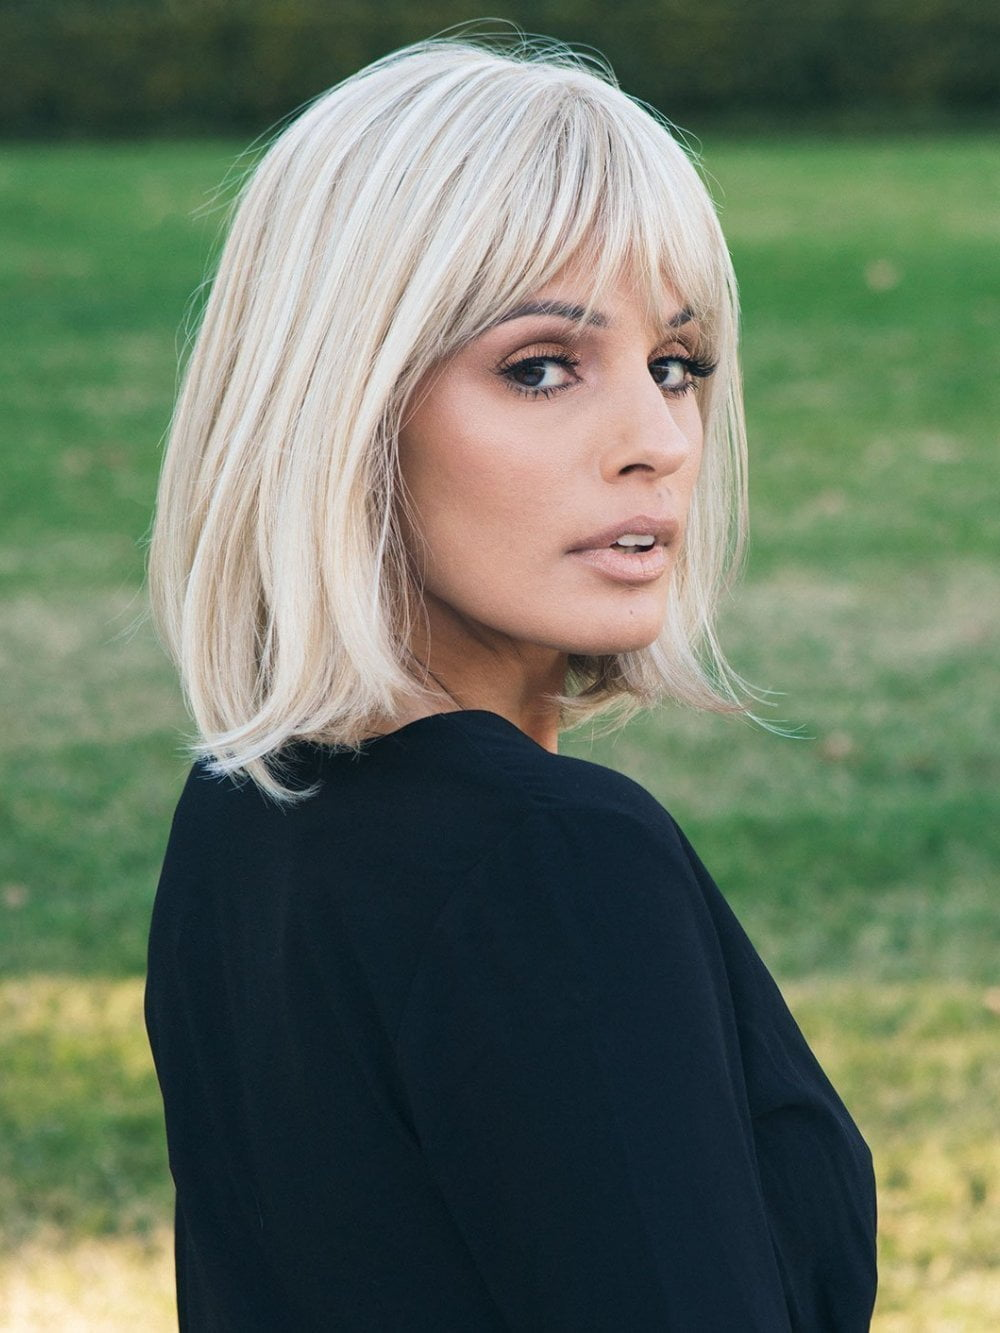 Paige Petite Wig by Envy | A Classic Bob – Wigs.com – The Wig Experts™